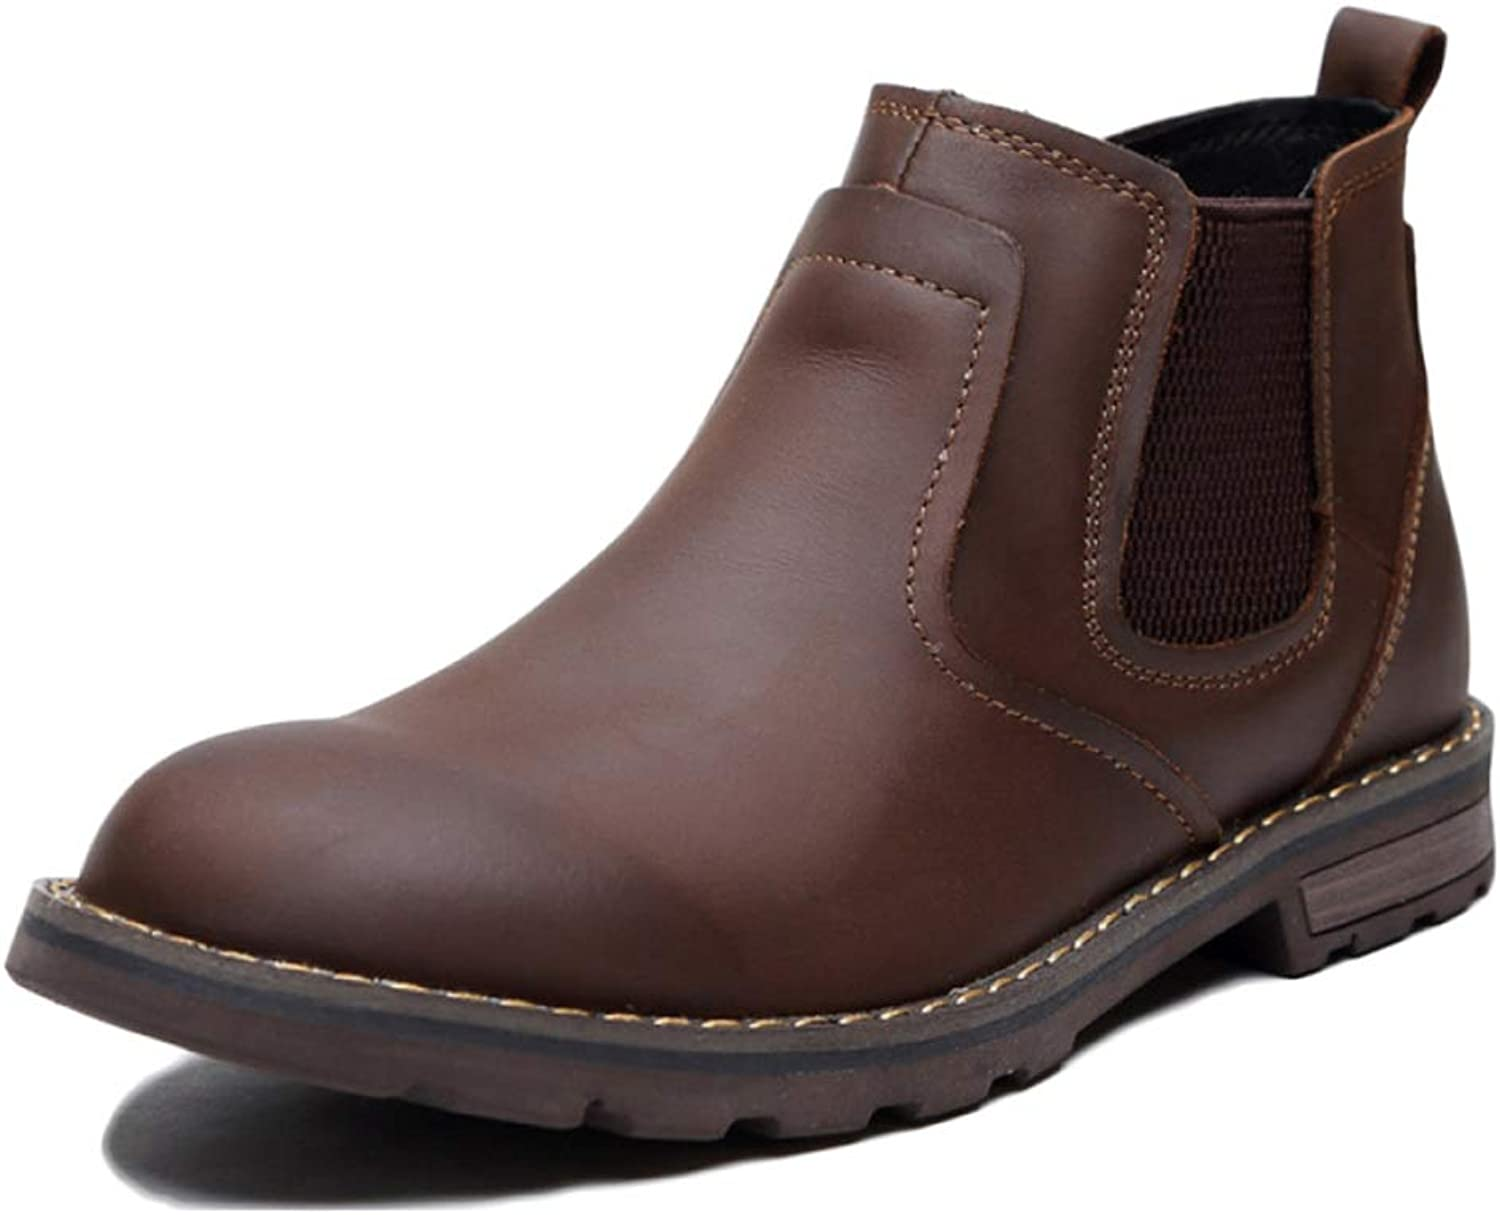 Men Chelsea Boots Autumn and Winter Leather Martin Boots Desert High-top shoes Men's Wedding Boots